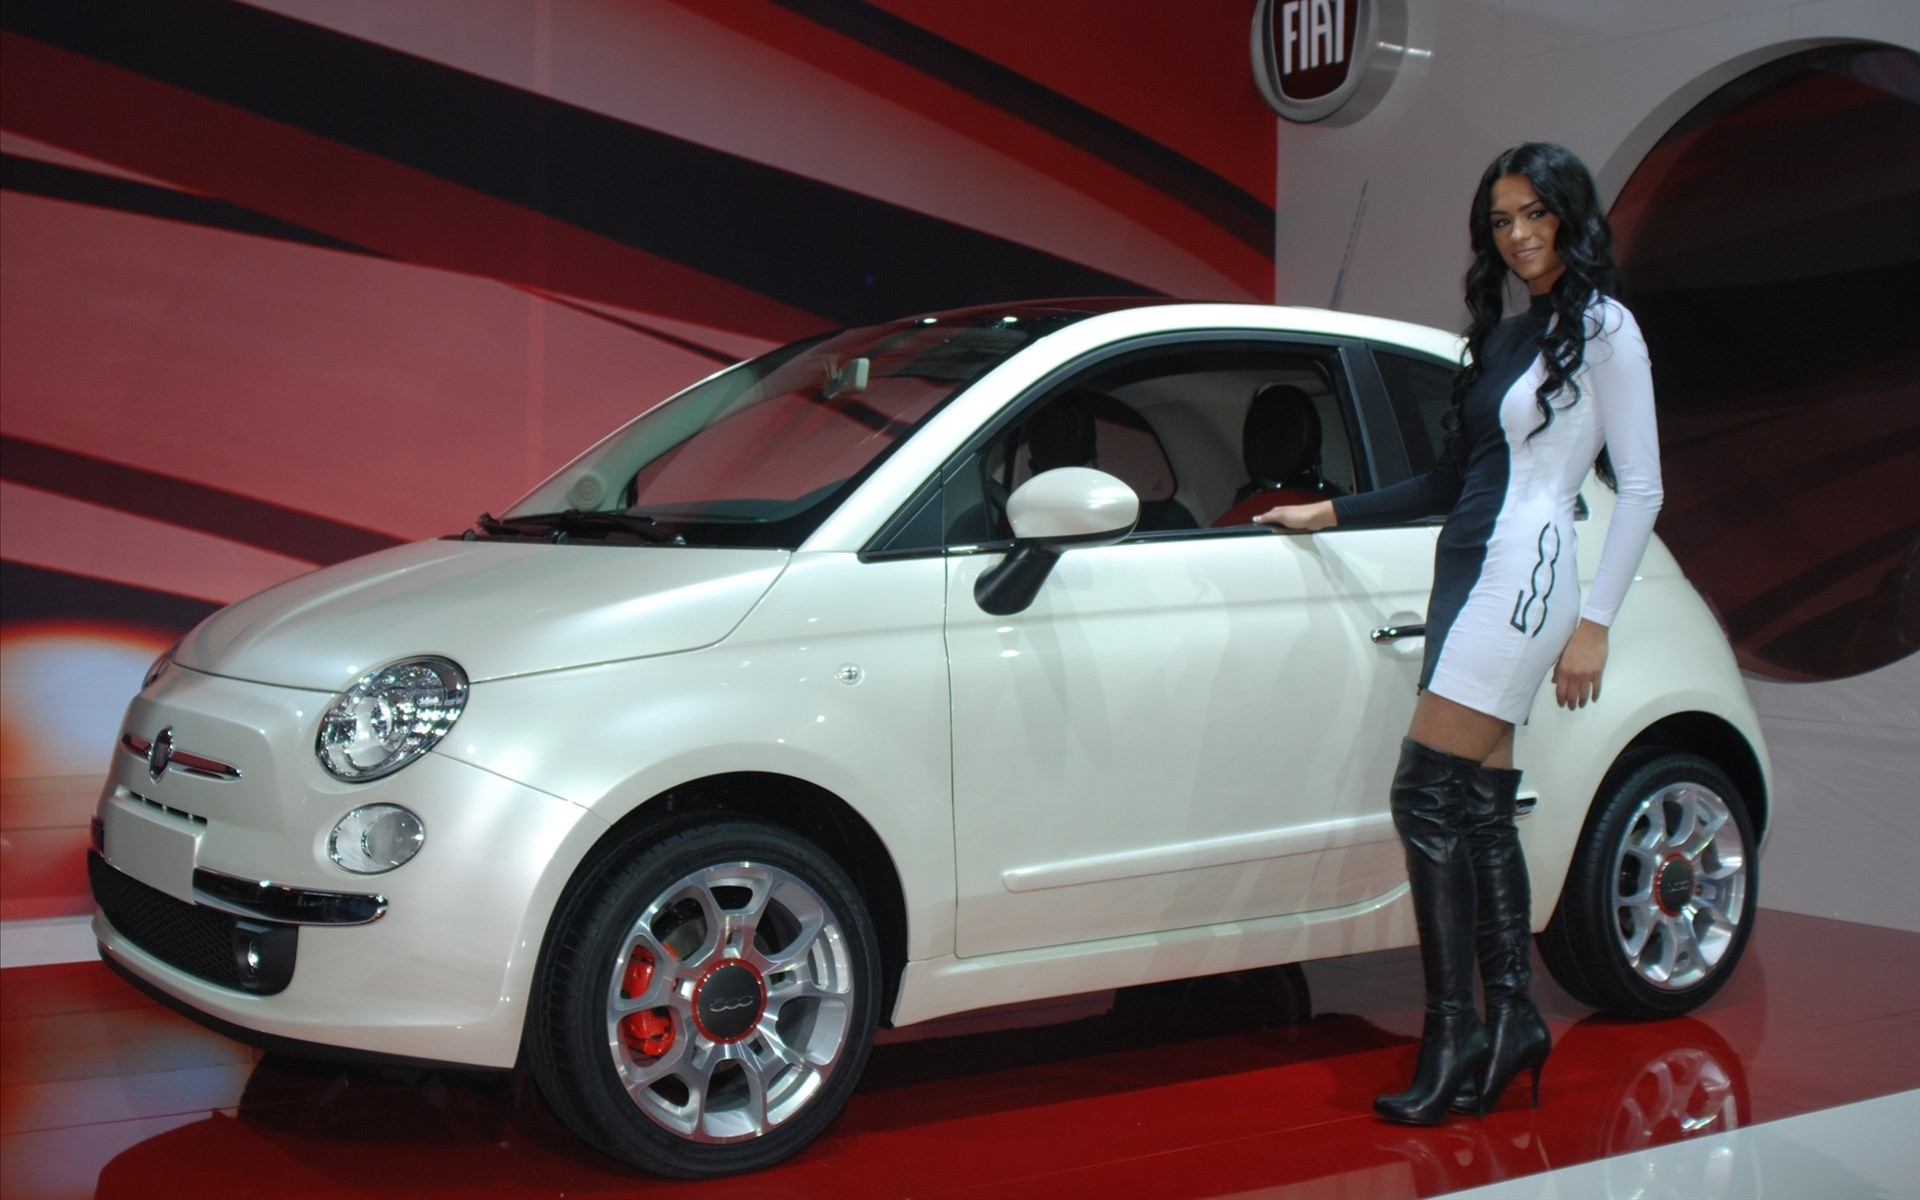 boots woman Sports Fiat HD Wallpaper